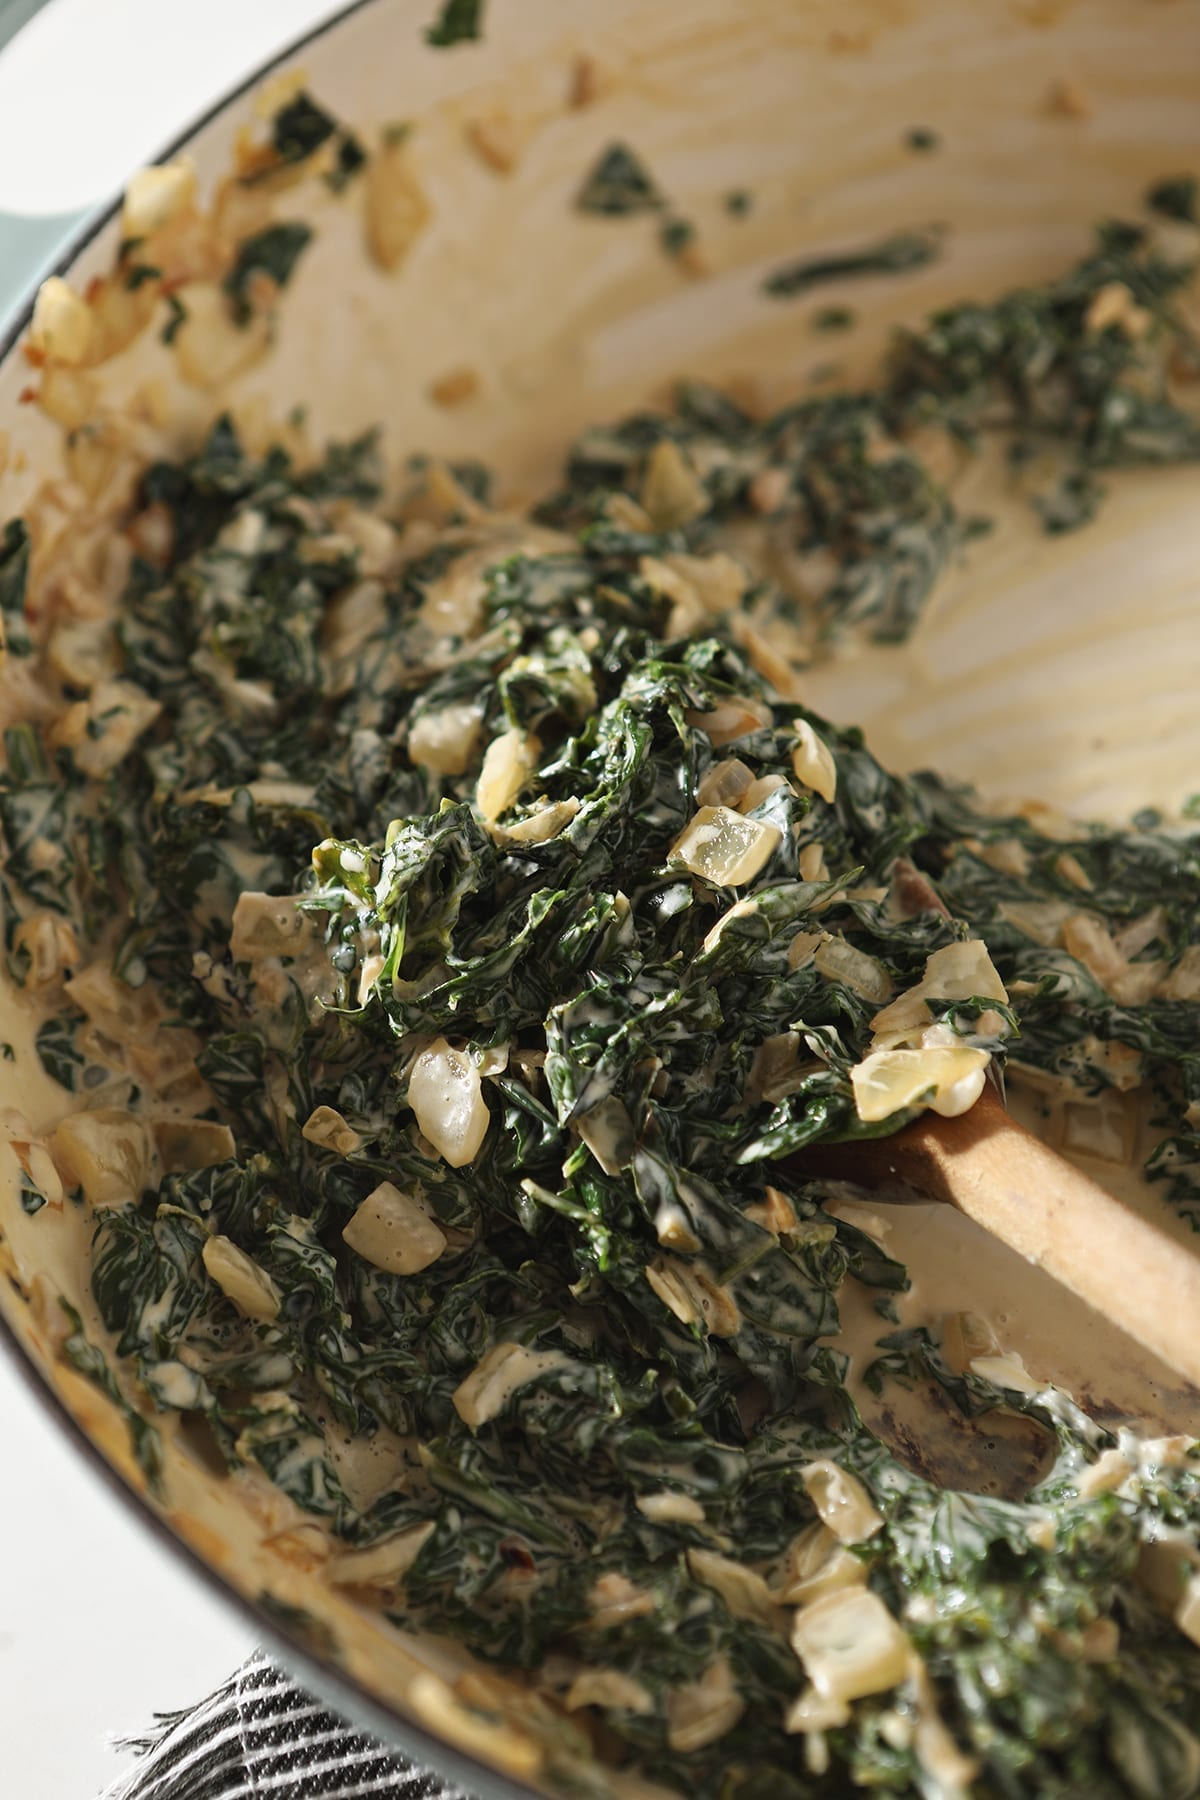 The creamy kale in a pan, after stirring the cream cheese into the mixture